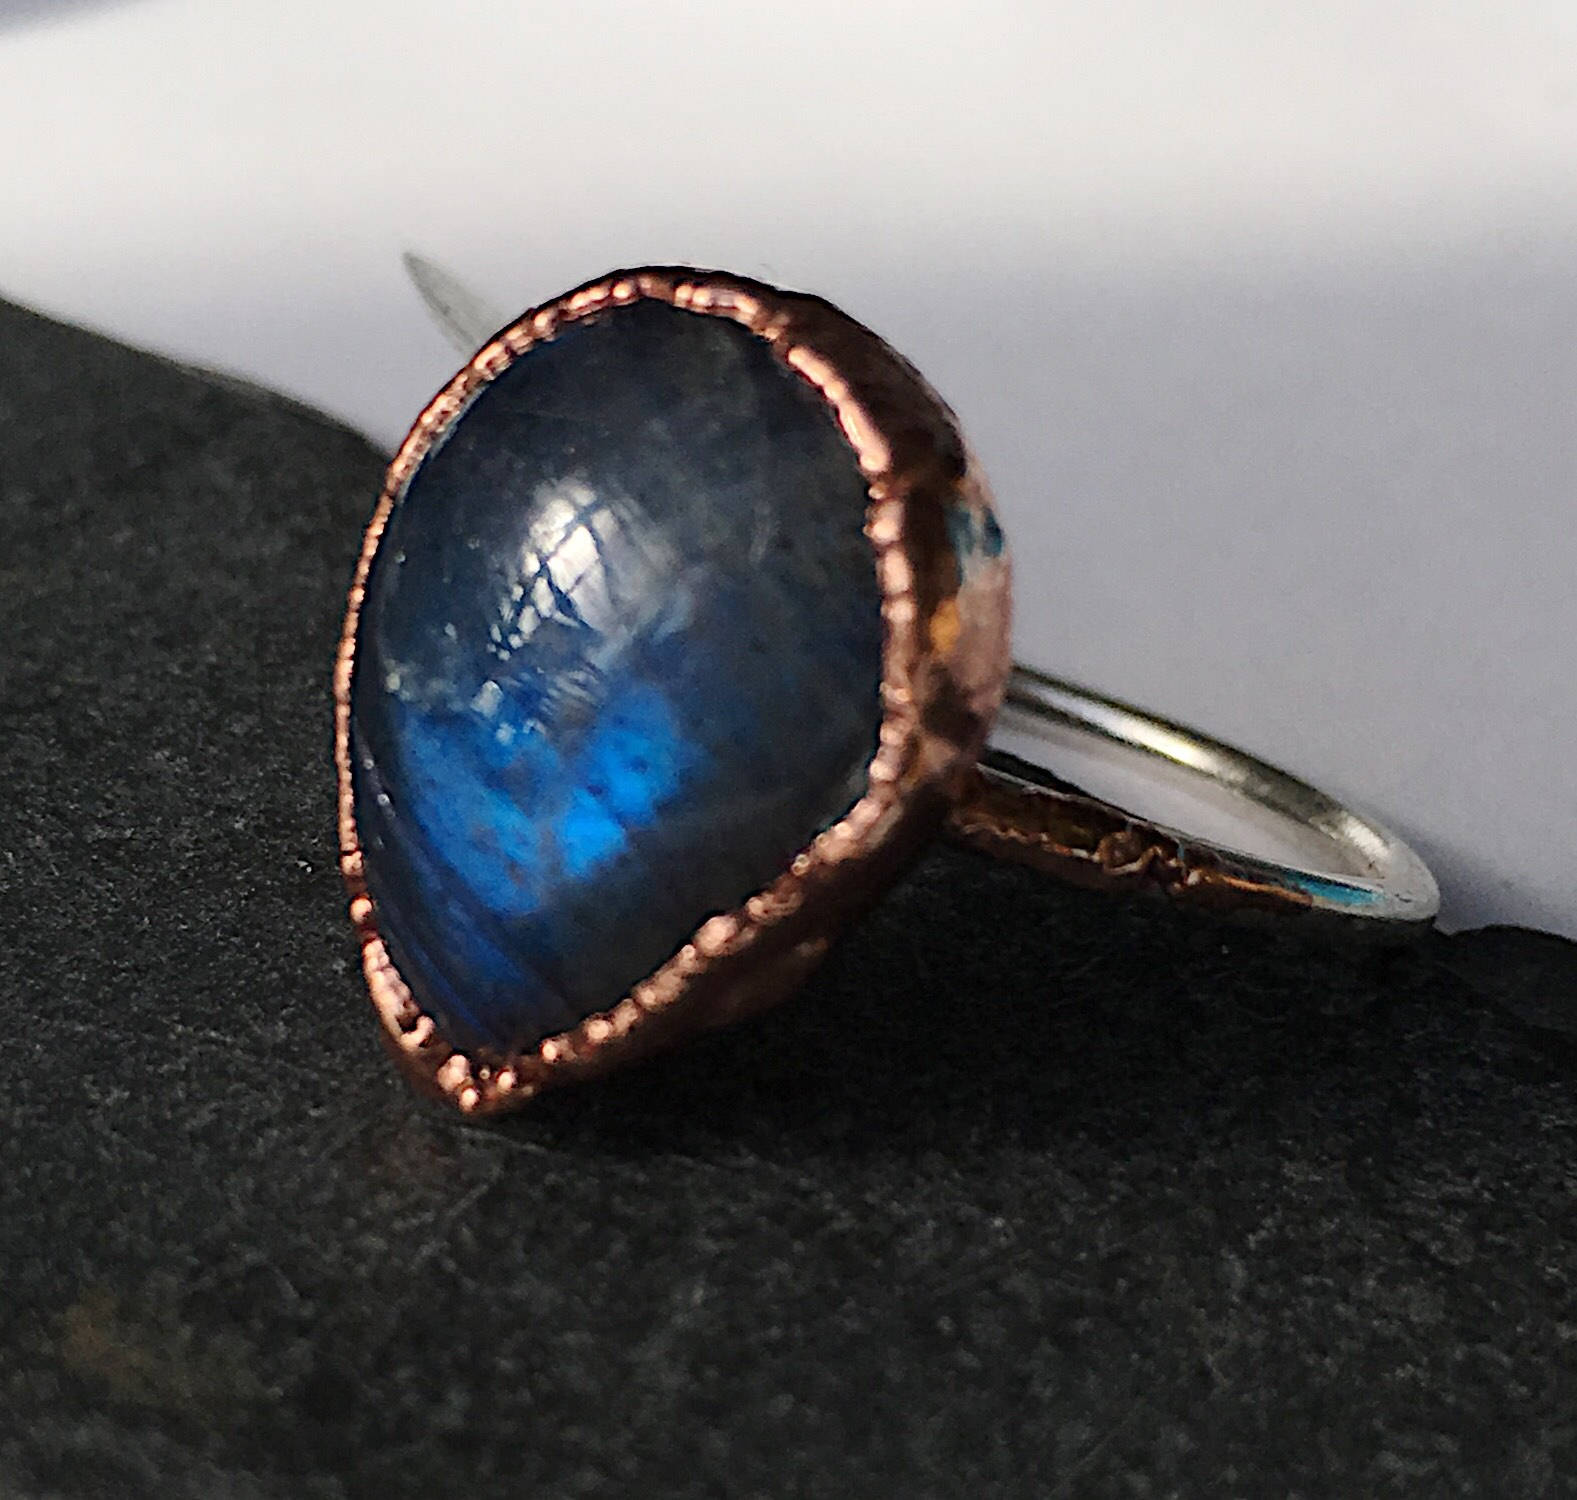 Teardrop Labradorite Sterling Silver & Copper Ring, size R, US ring size 8 5/8 - Glitter and Gem Jewellery